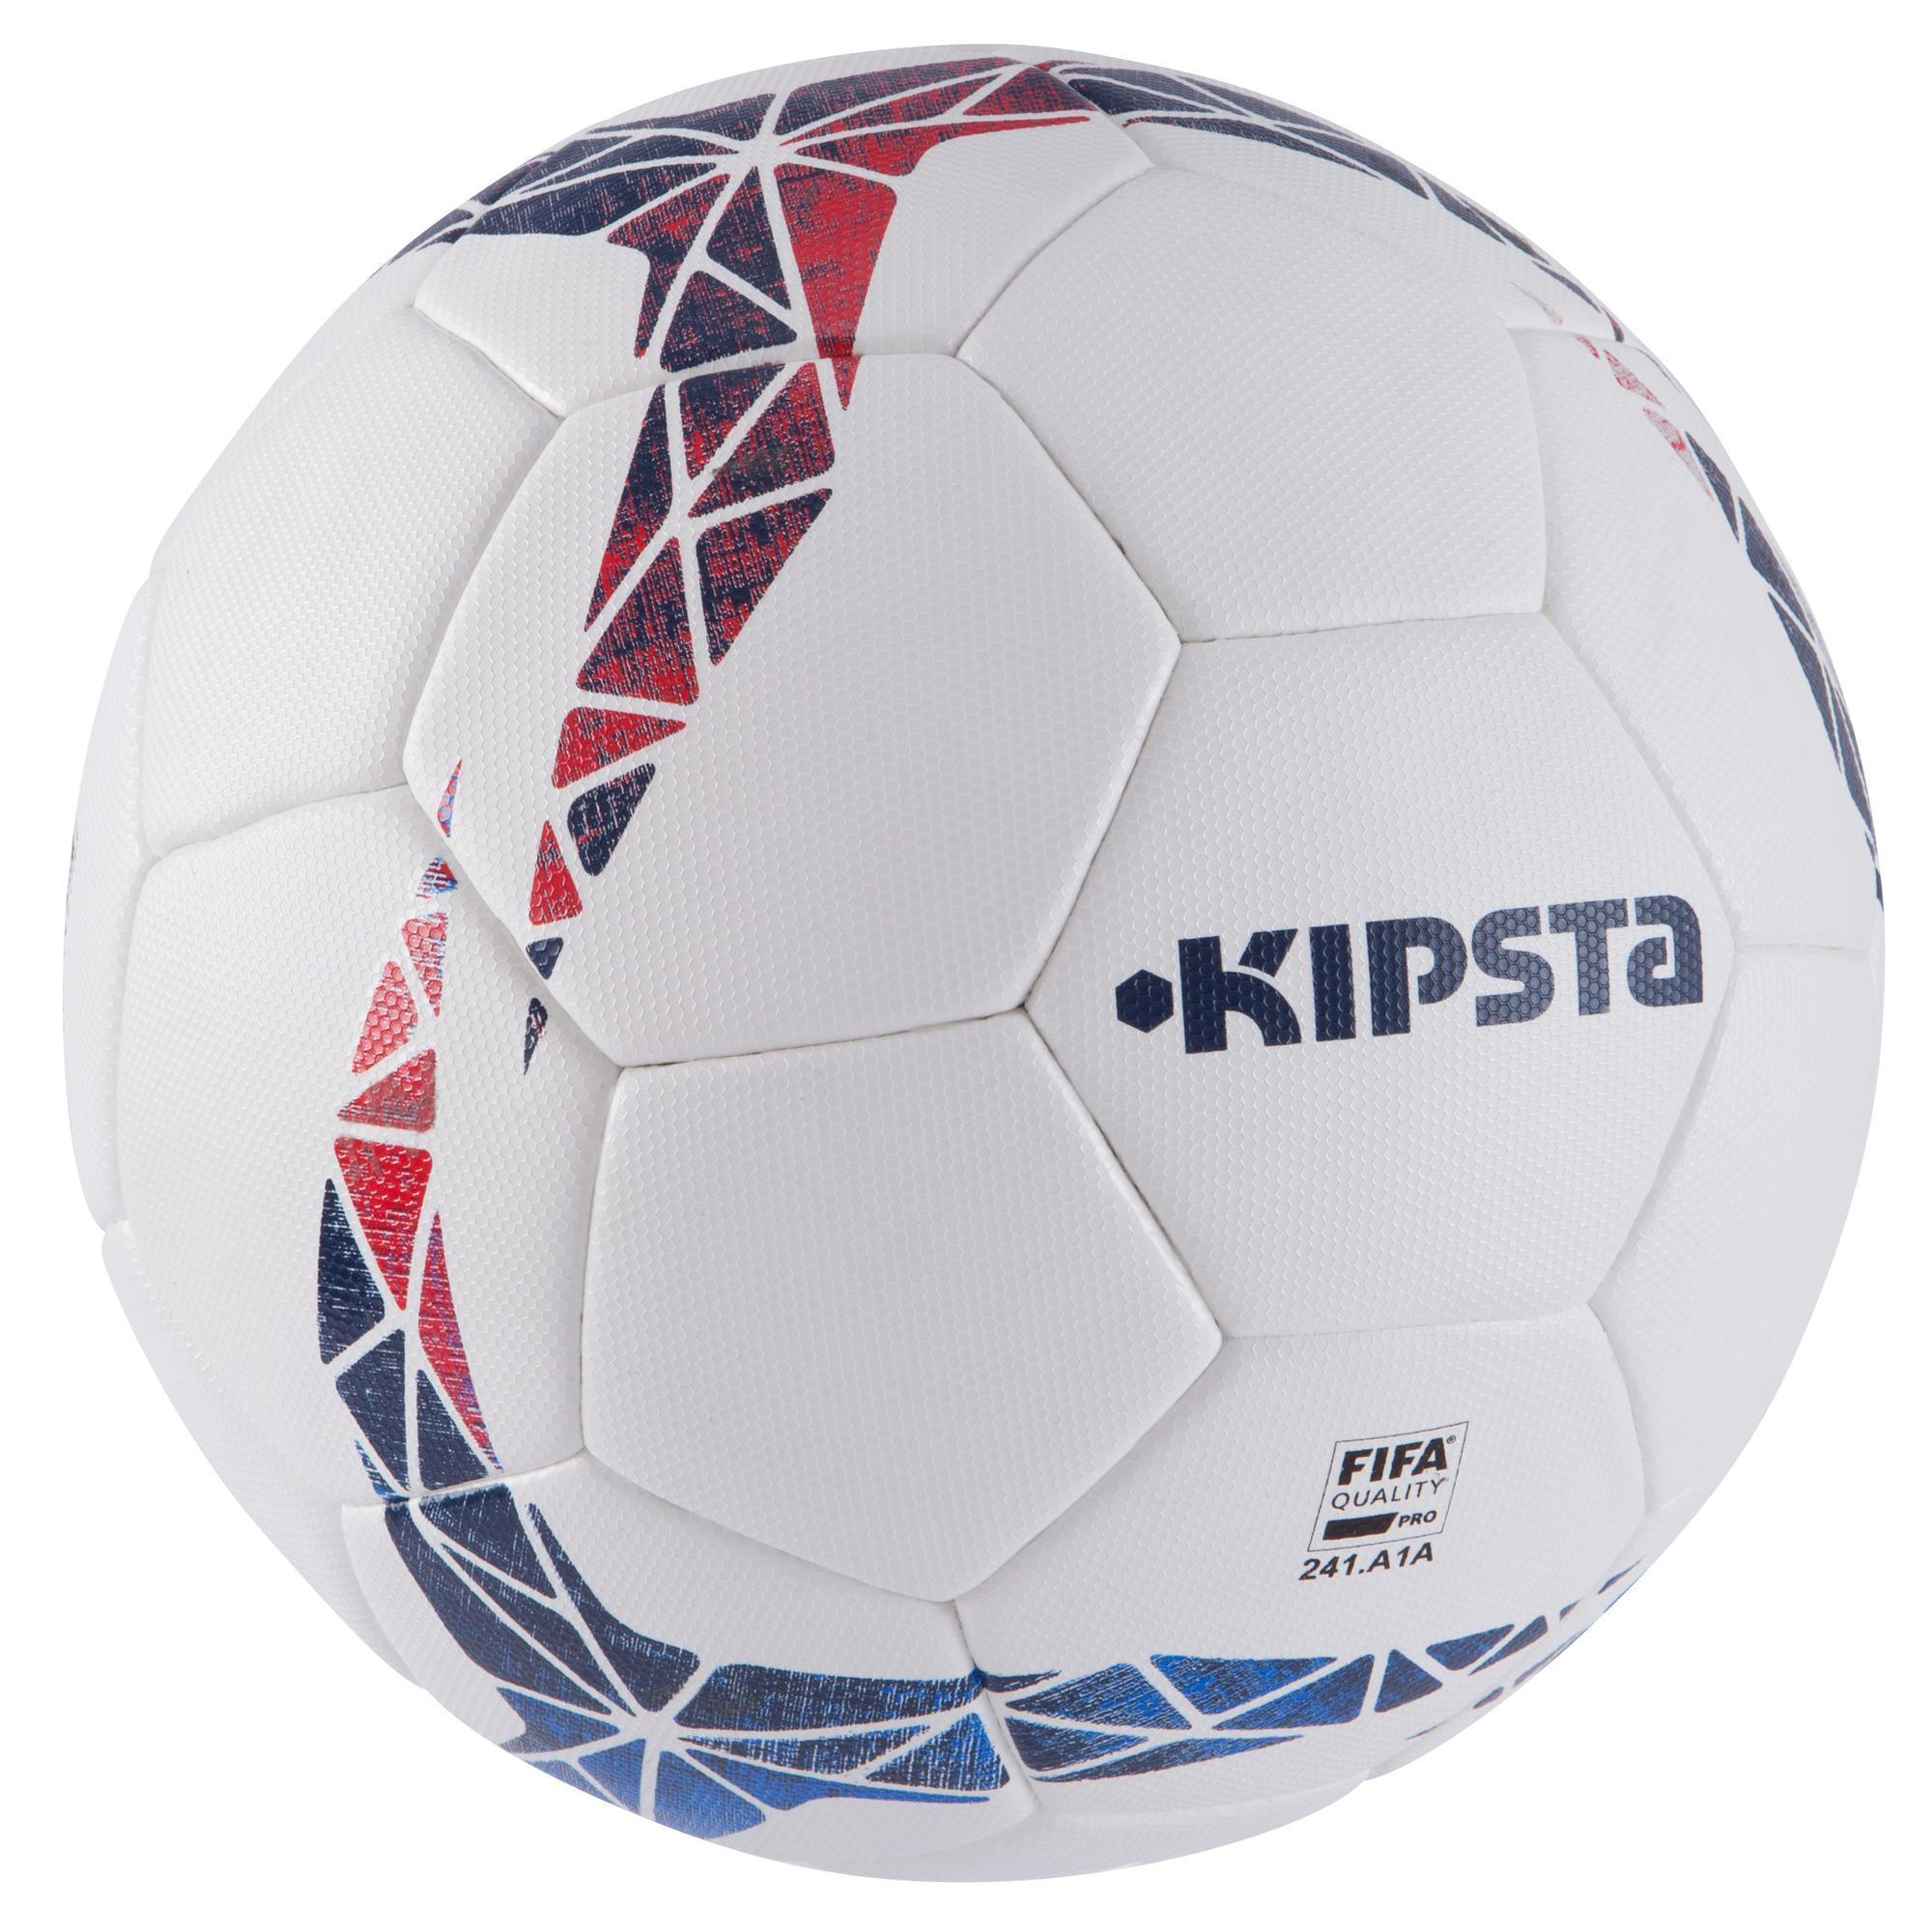 ballon de football f900 fifa pro thermocoll taille 5 blanc bleu rouge kipsta by decathlon. Black Bedroom Furniture Sets. Home Design Ideas